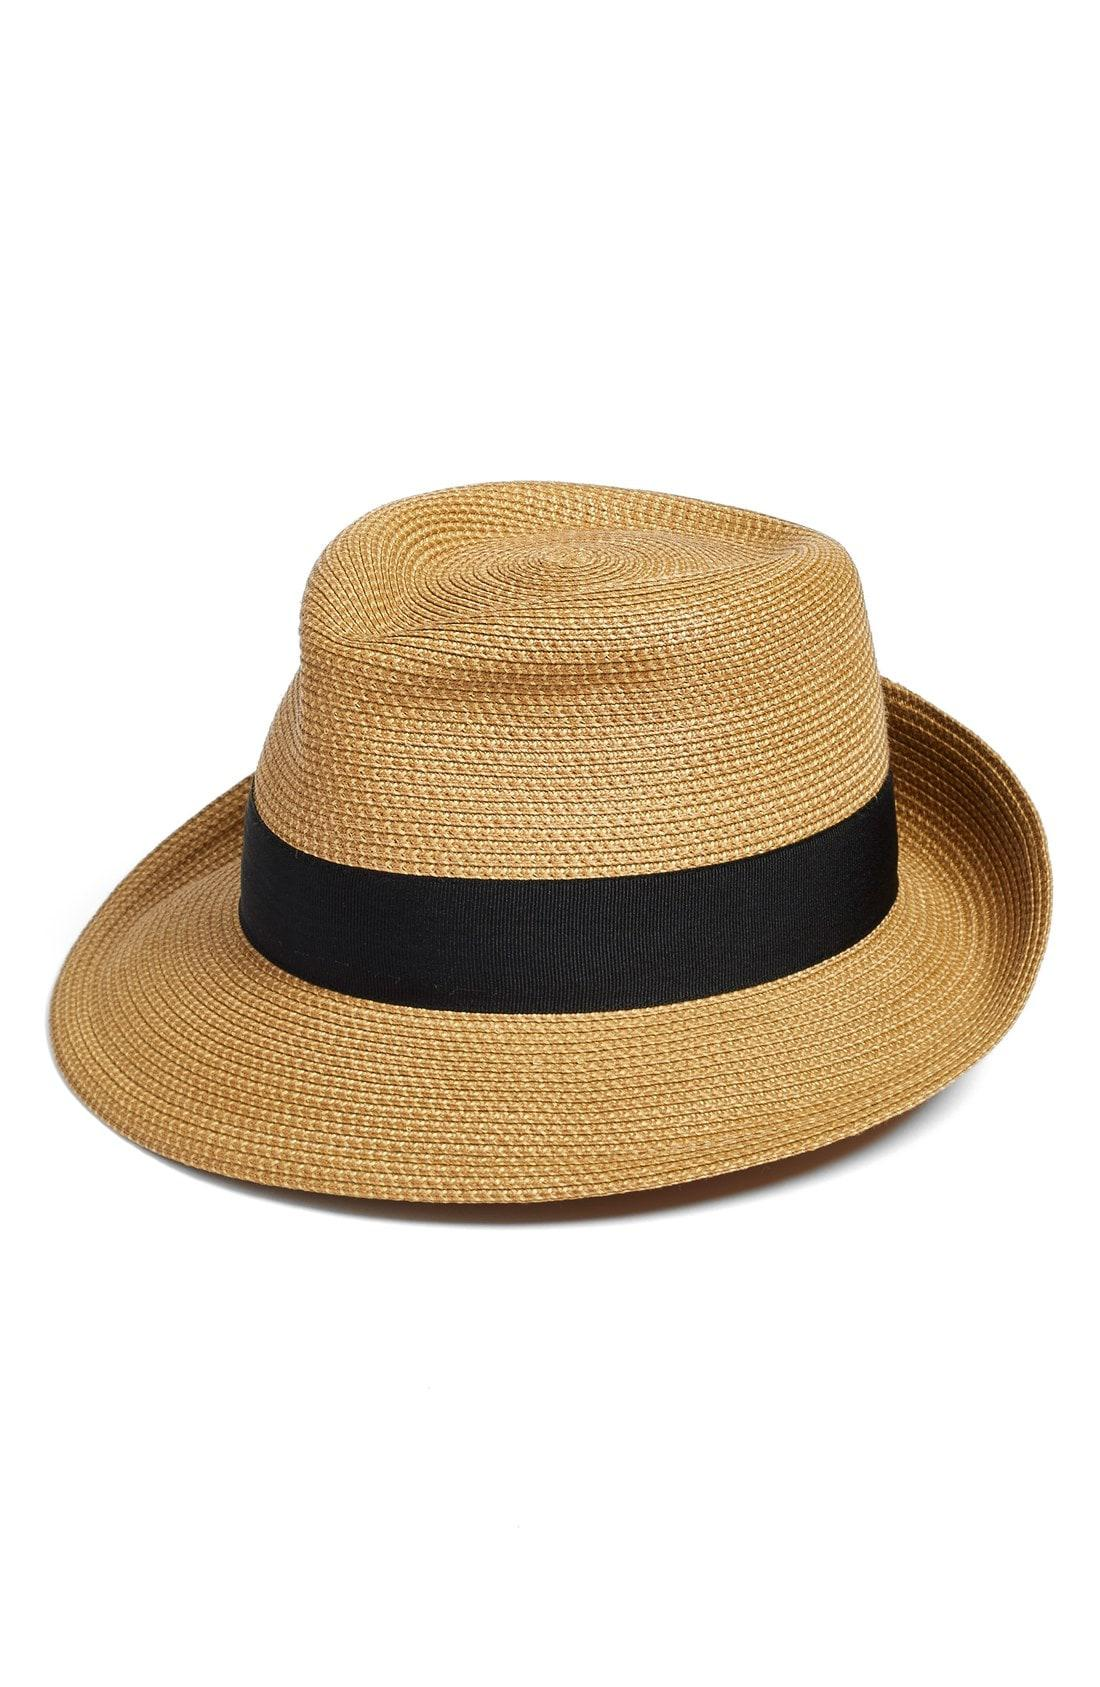 2a2be10d1533f Lyst - Eric Javits Classic Squishee Packable Fedora Sun Hat in Black